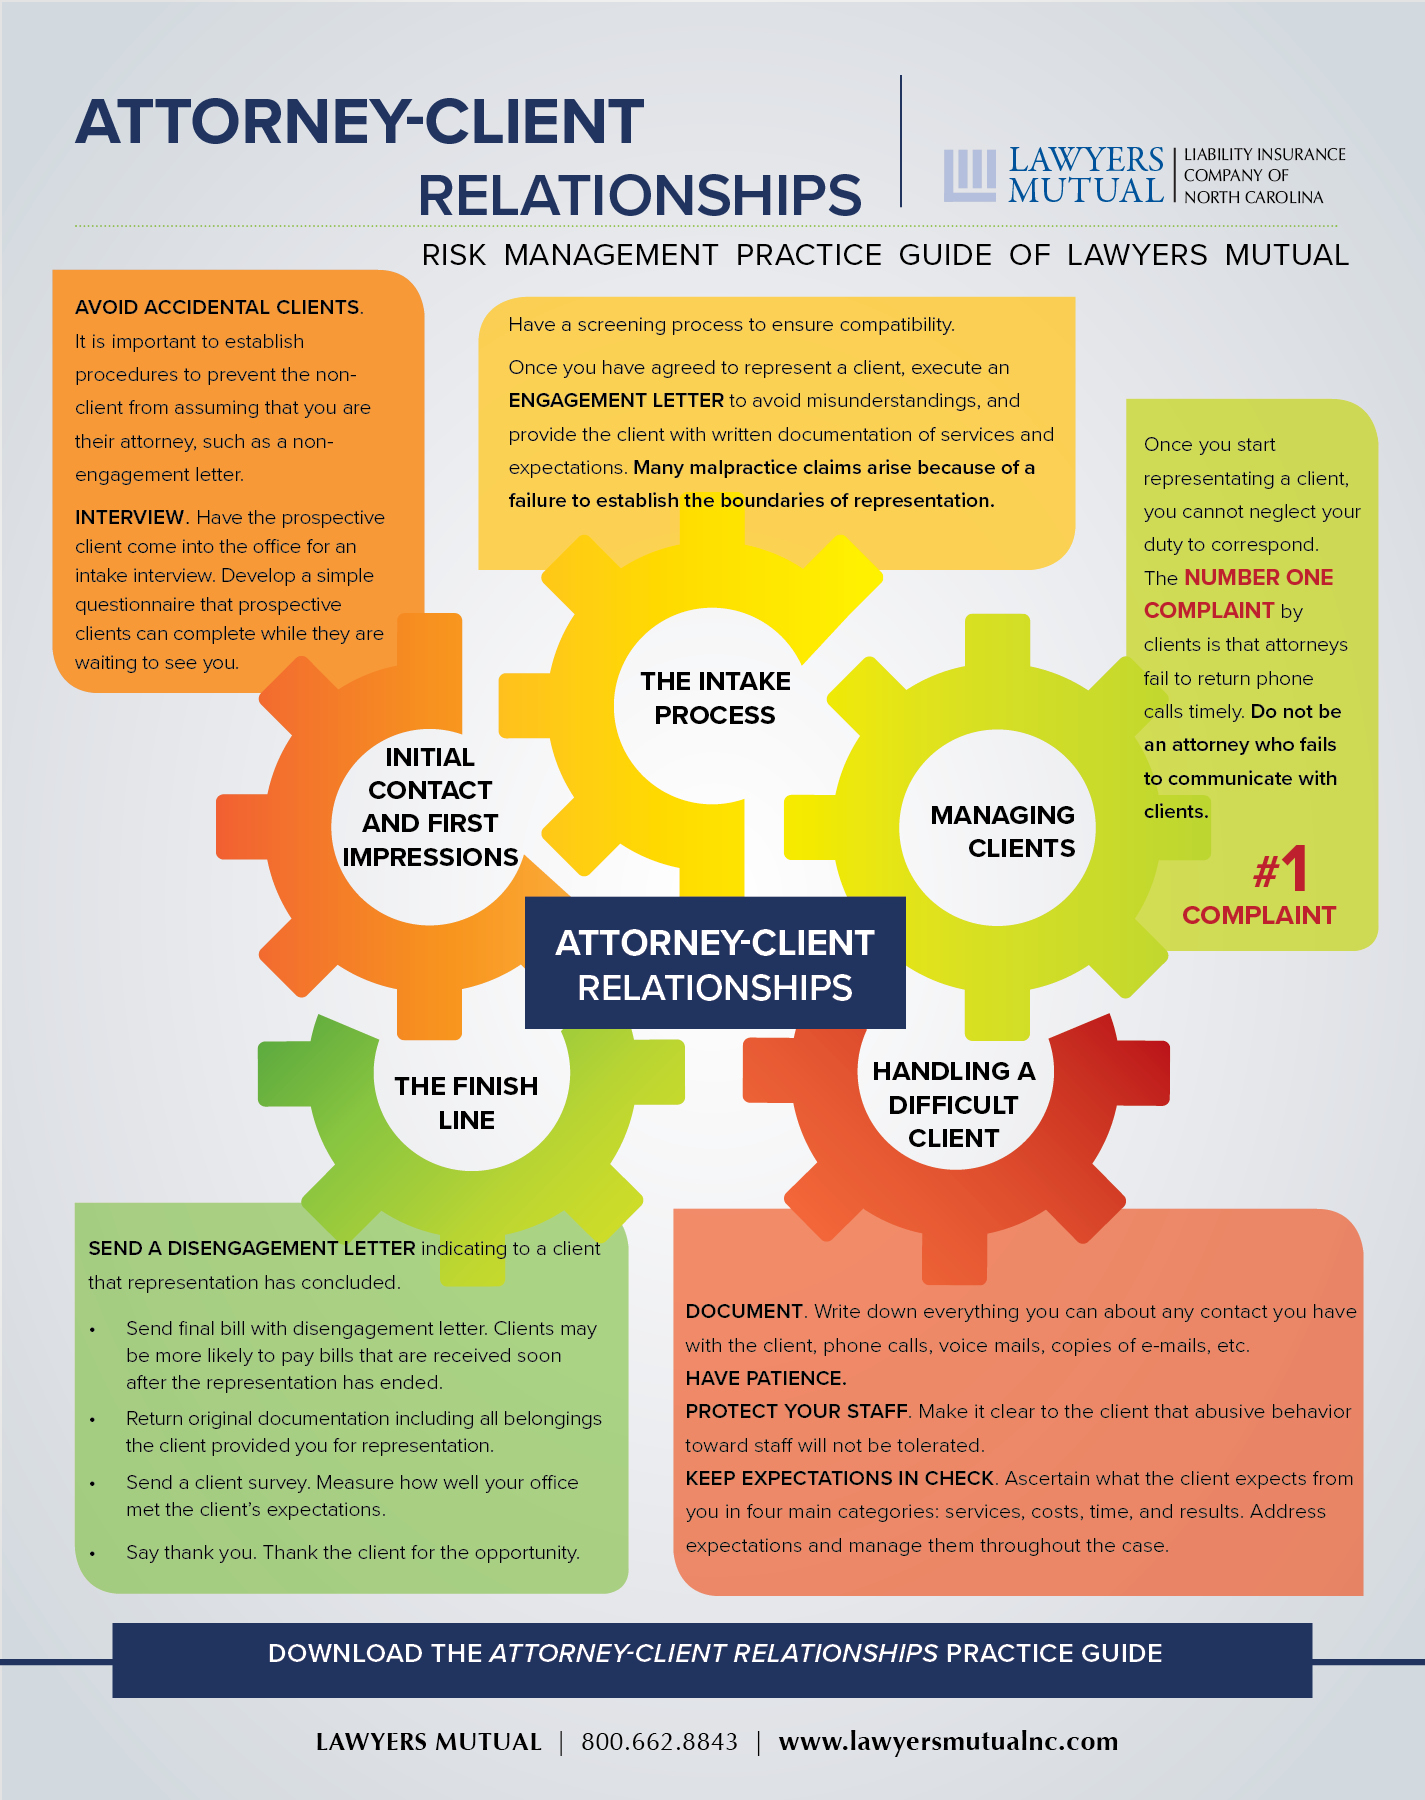 attorney-client relationships infographic